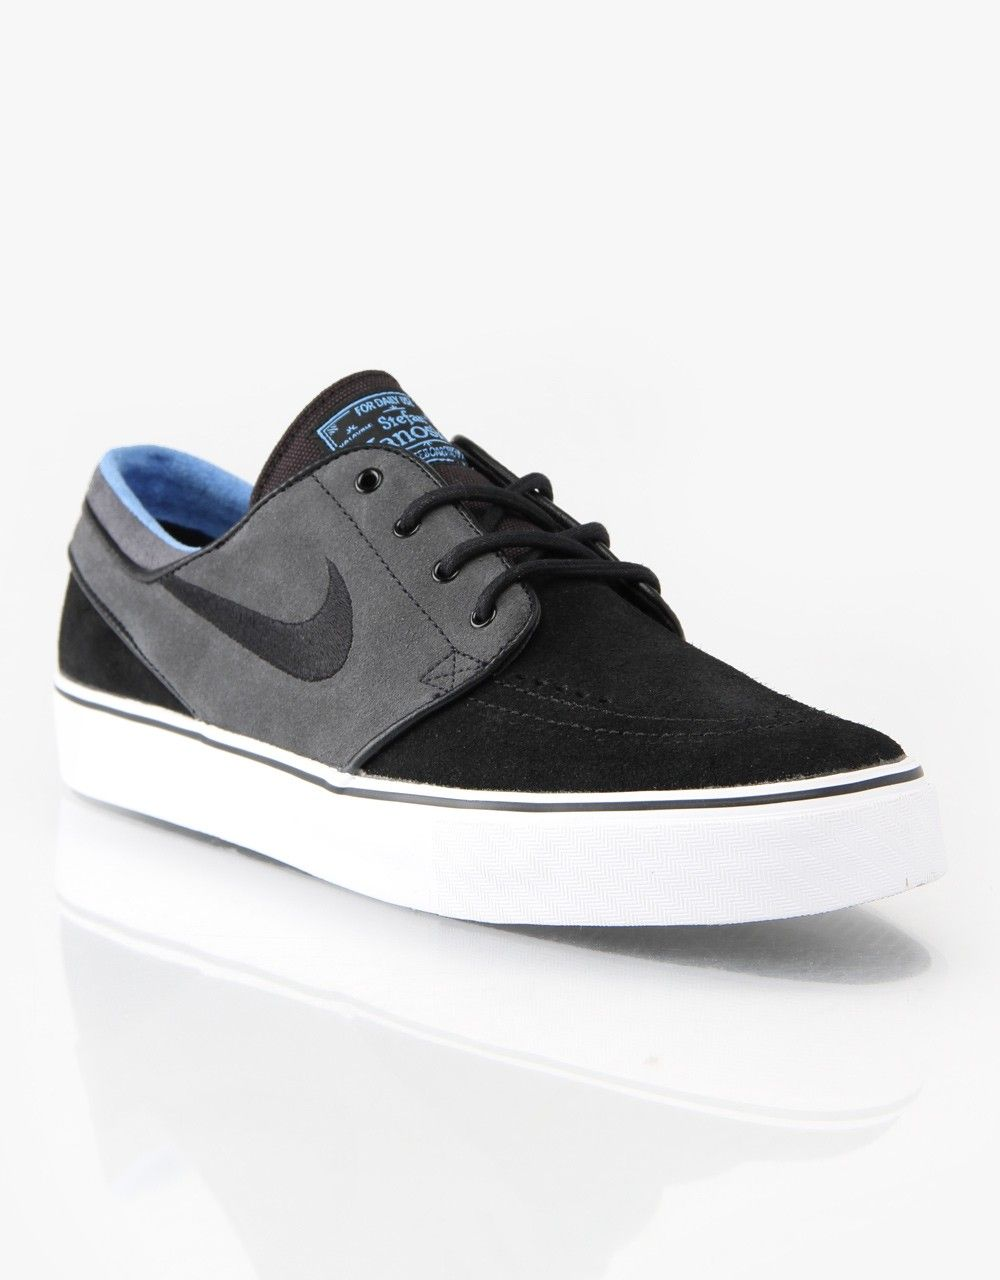 new styles db26f 42827 Nike SB Zoom Stefan Janoski Skateboarding Shoes